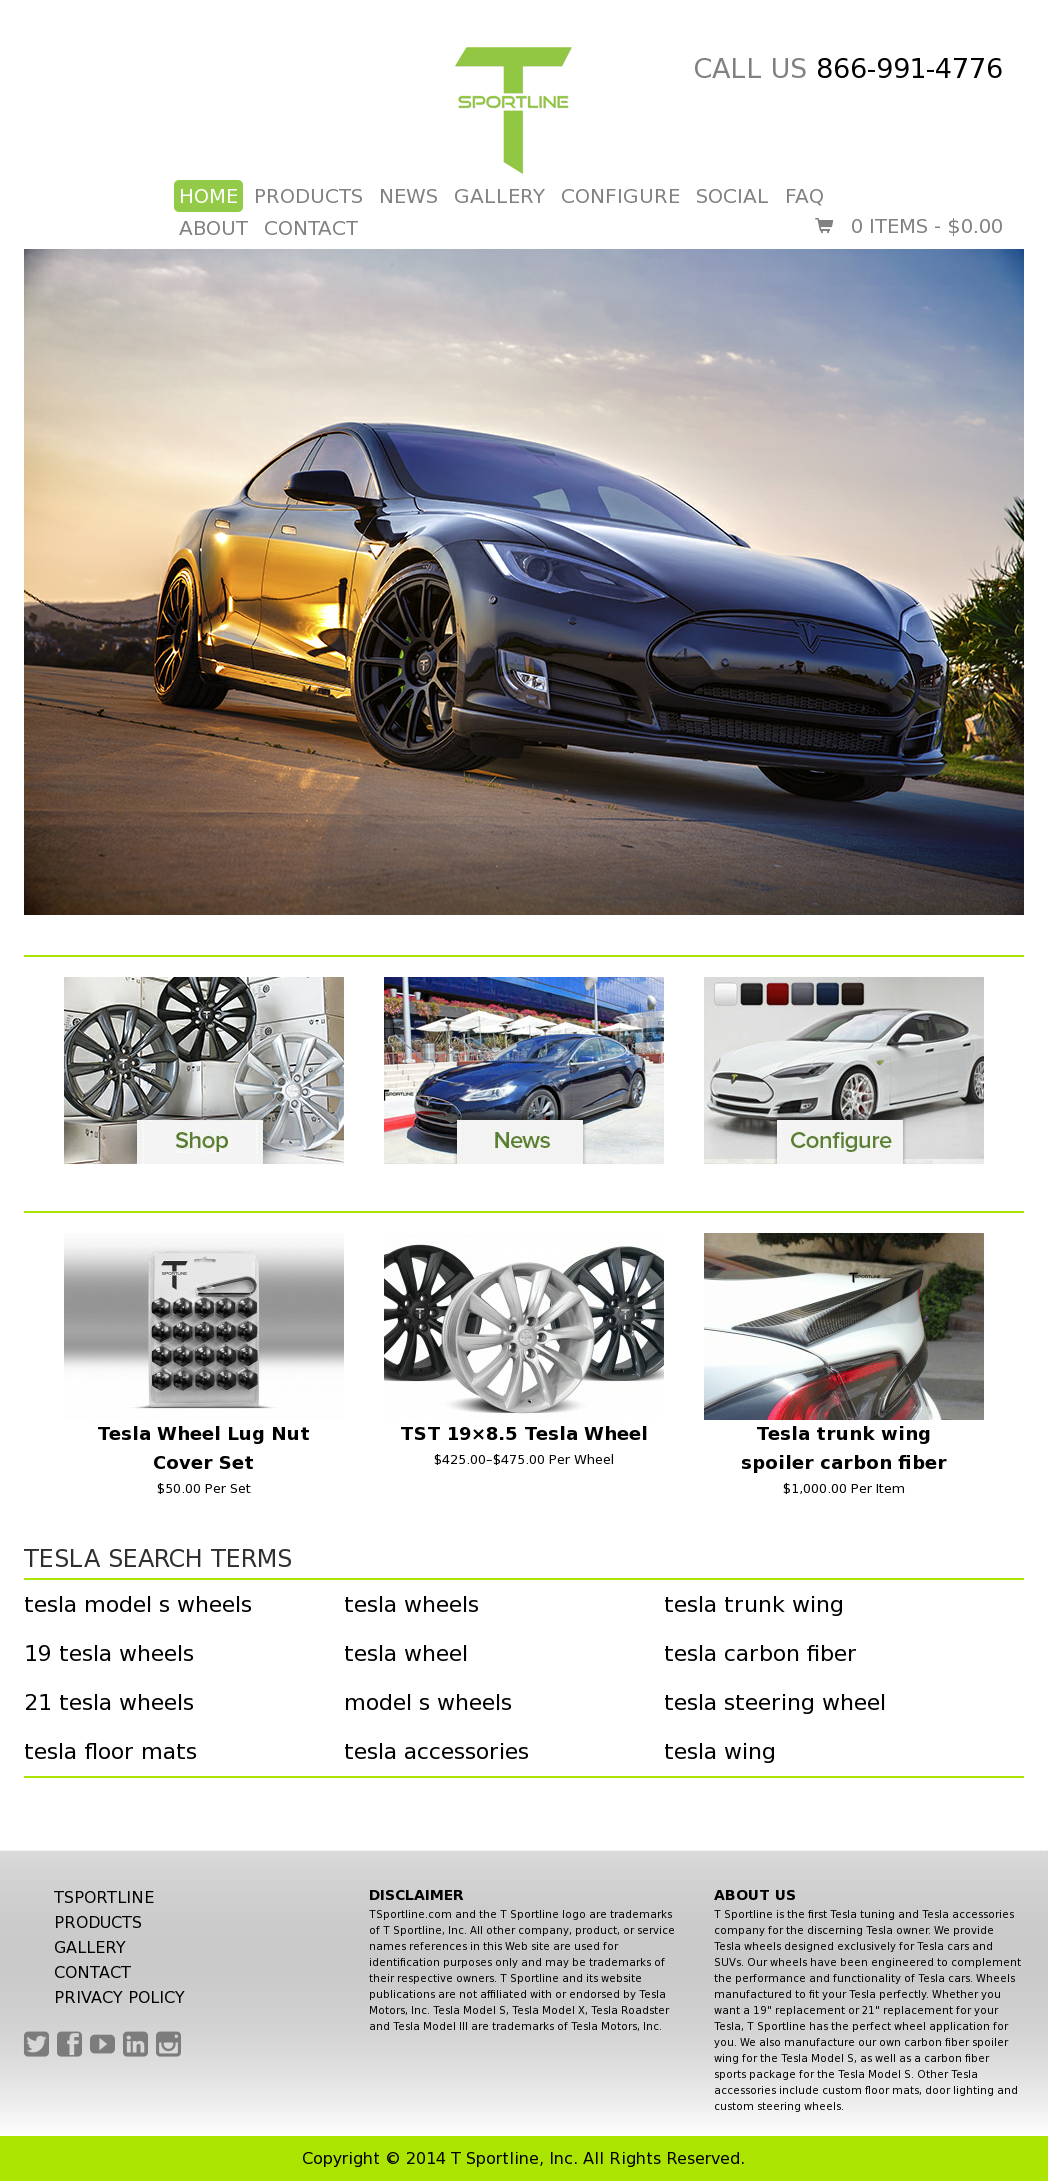 T Sportline Competitors, Revenue and Employees - Owler Company Profile